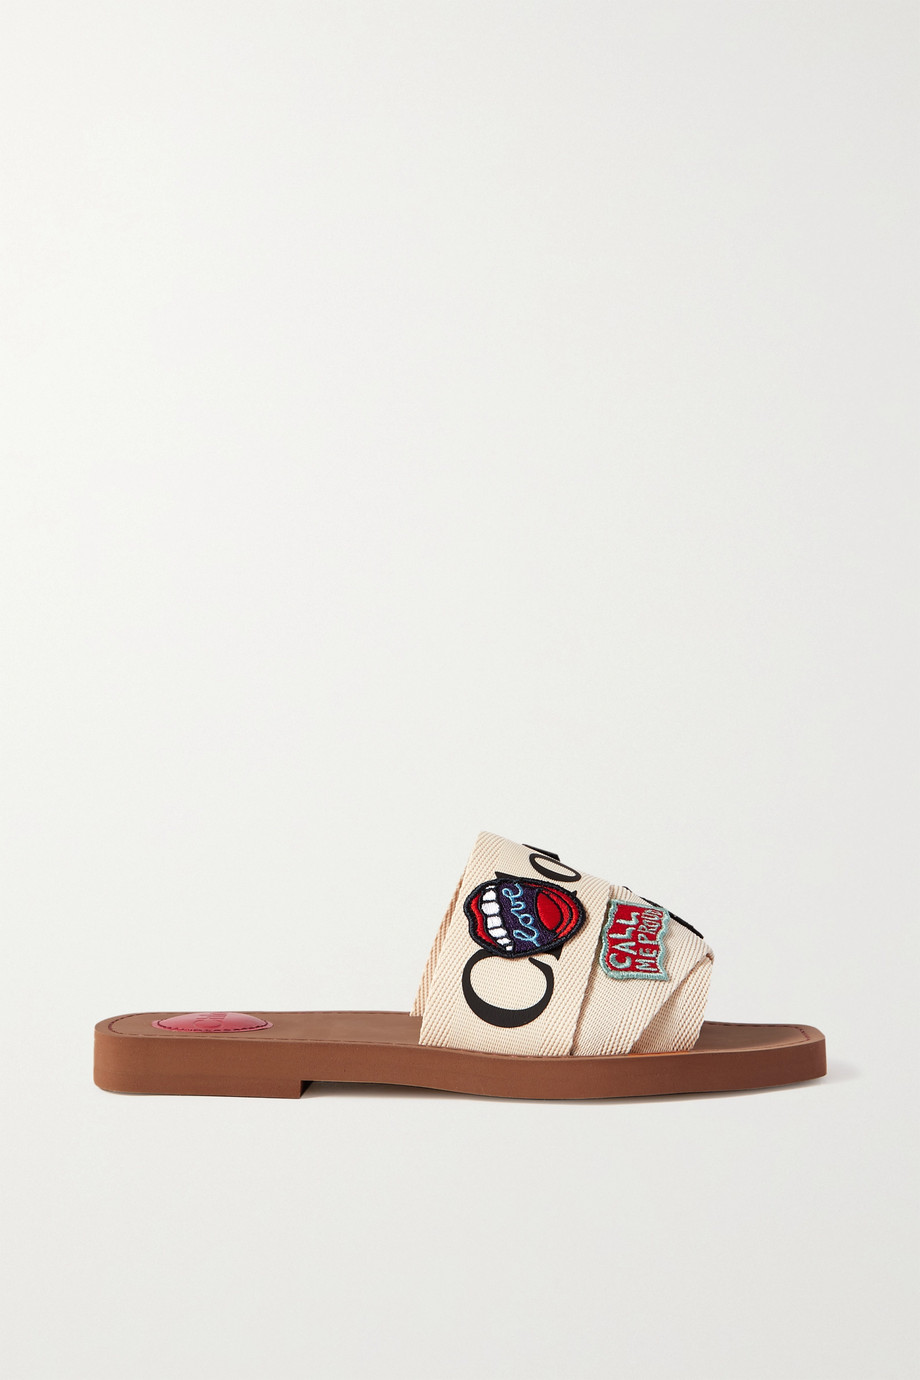 CHLOÉ Woody appliquéd logo-print canvas slides